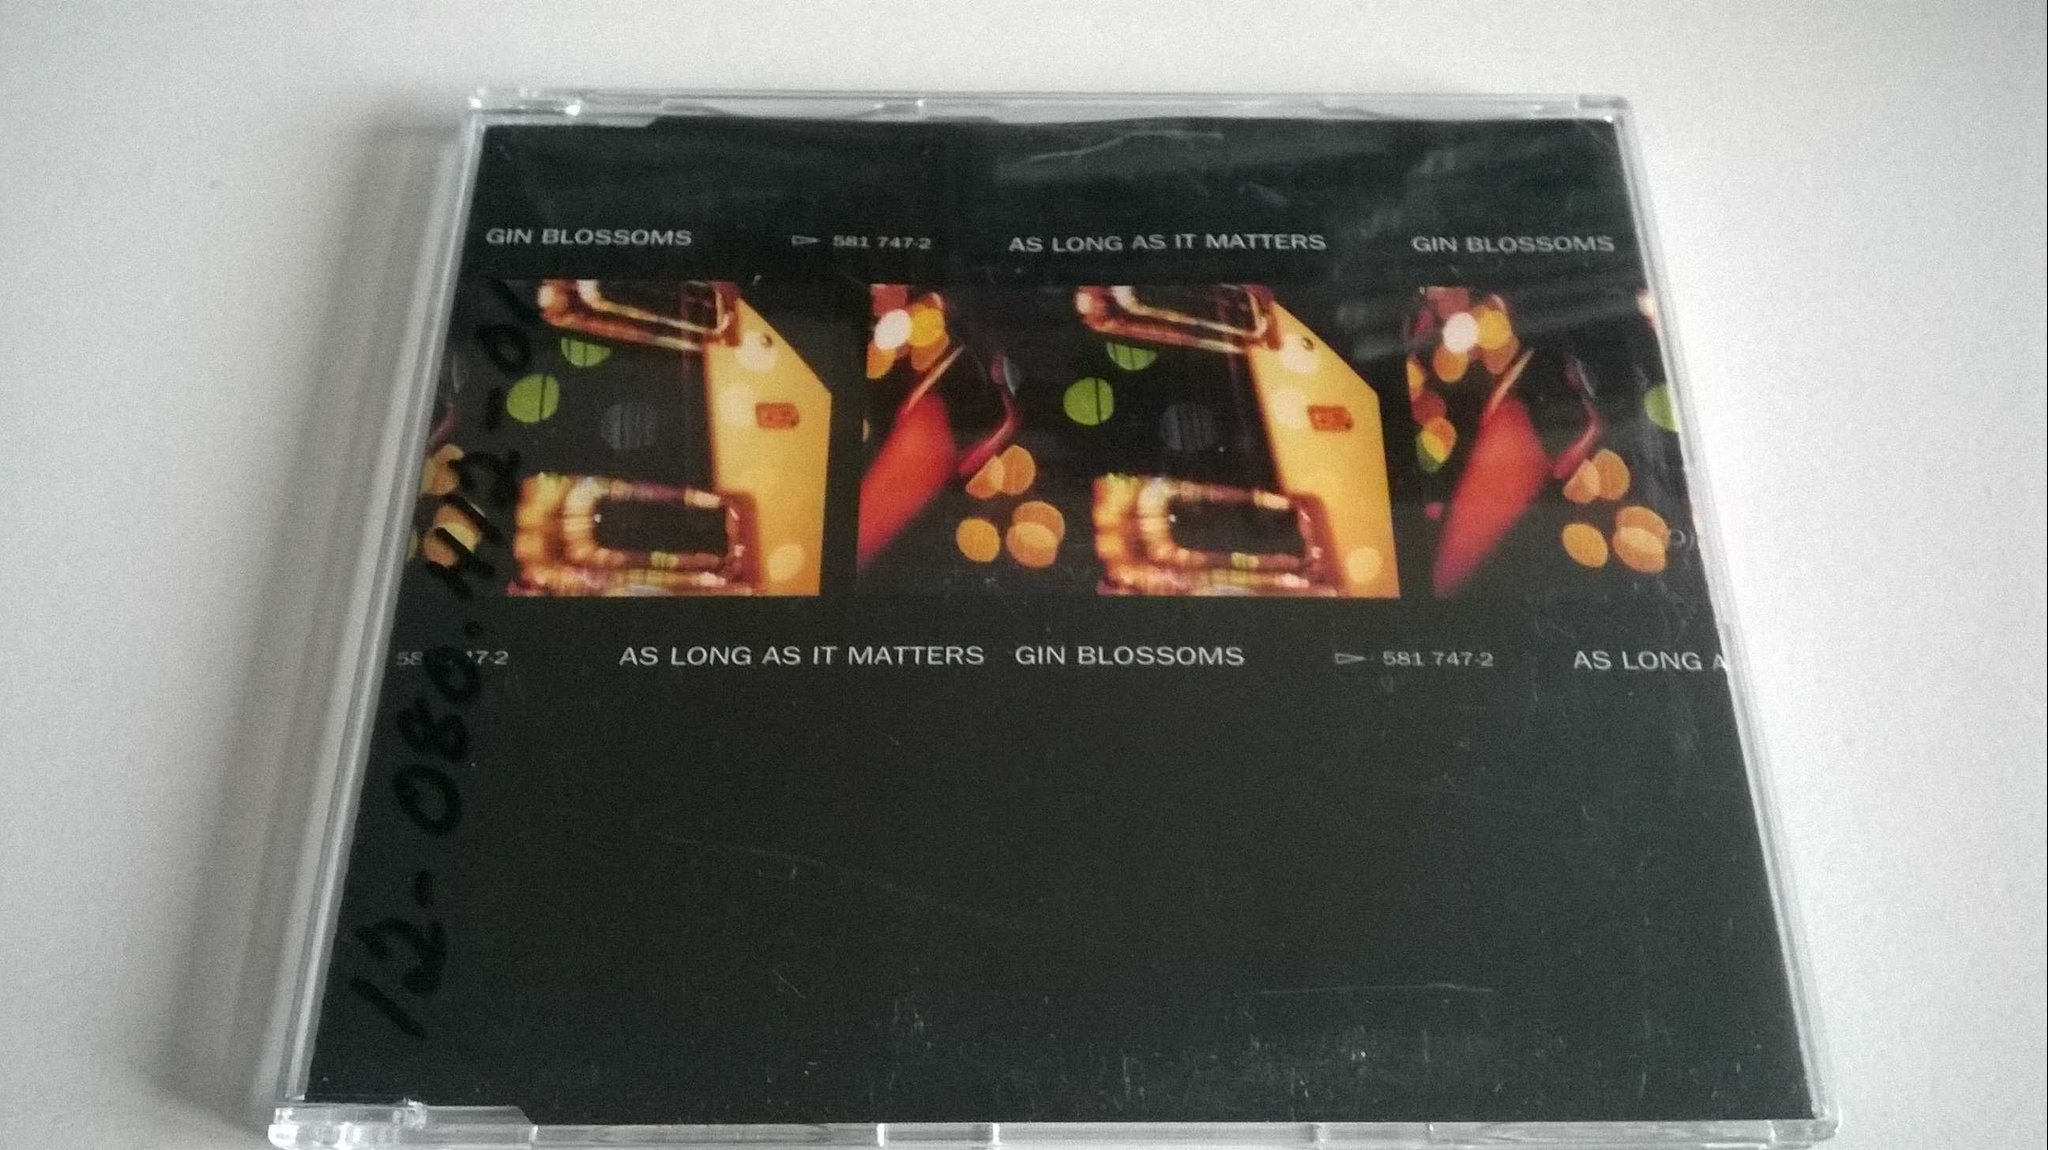 Gin Blossoms - As Long As It Matters, CD